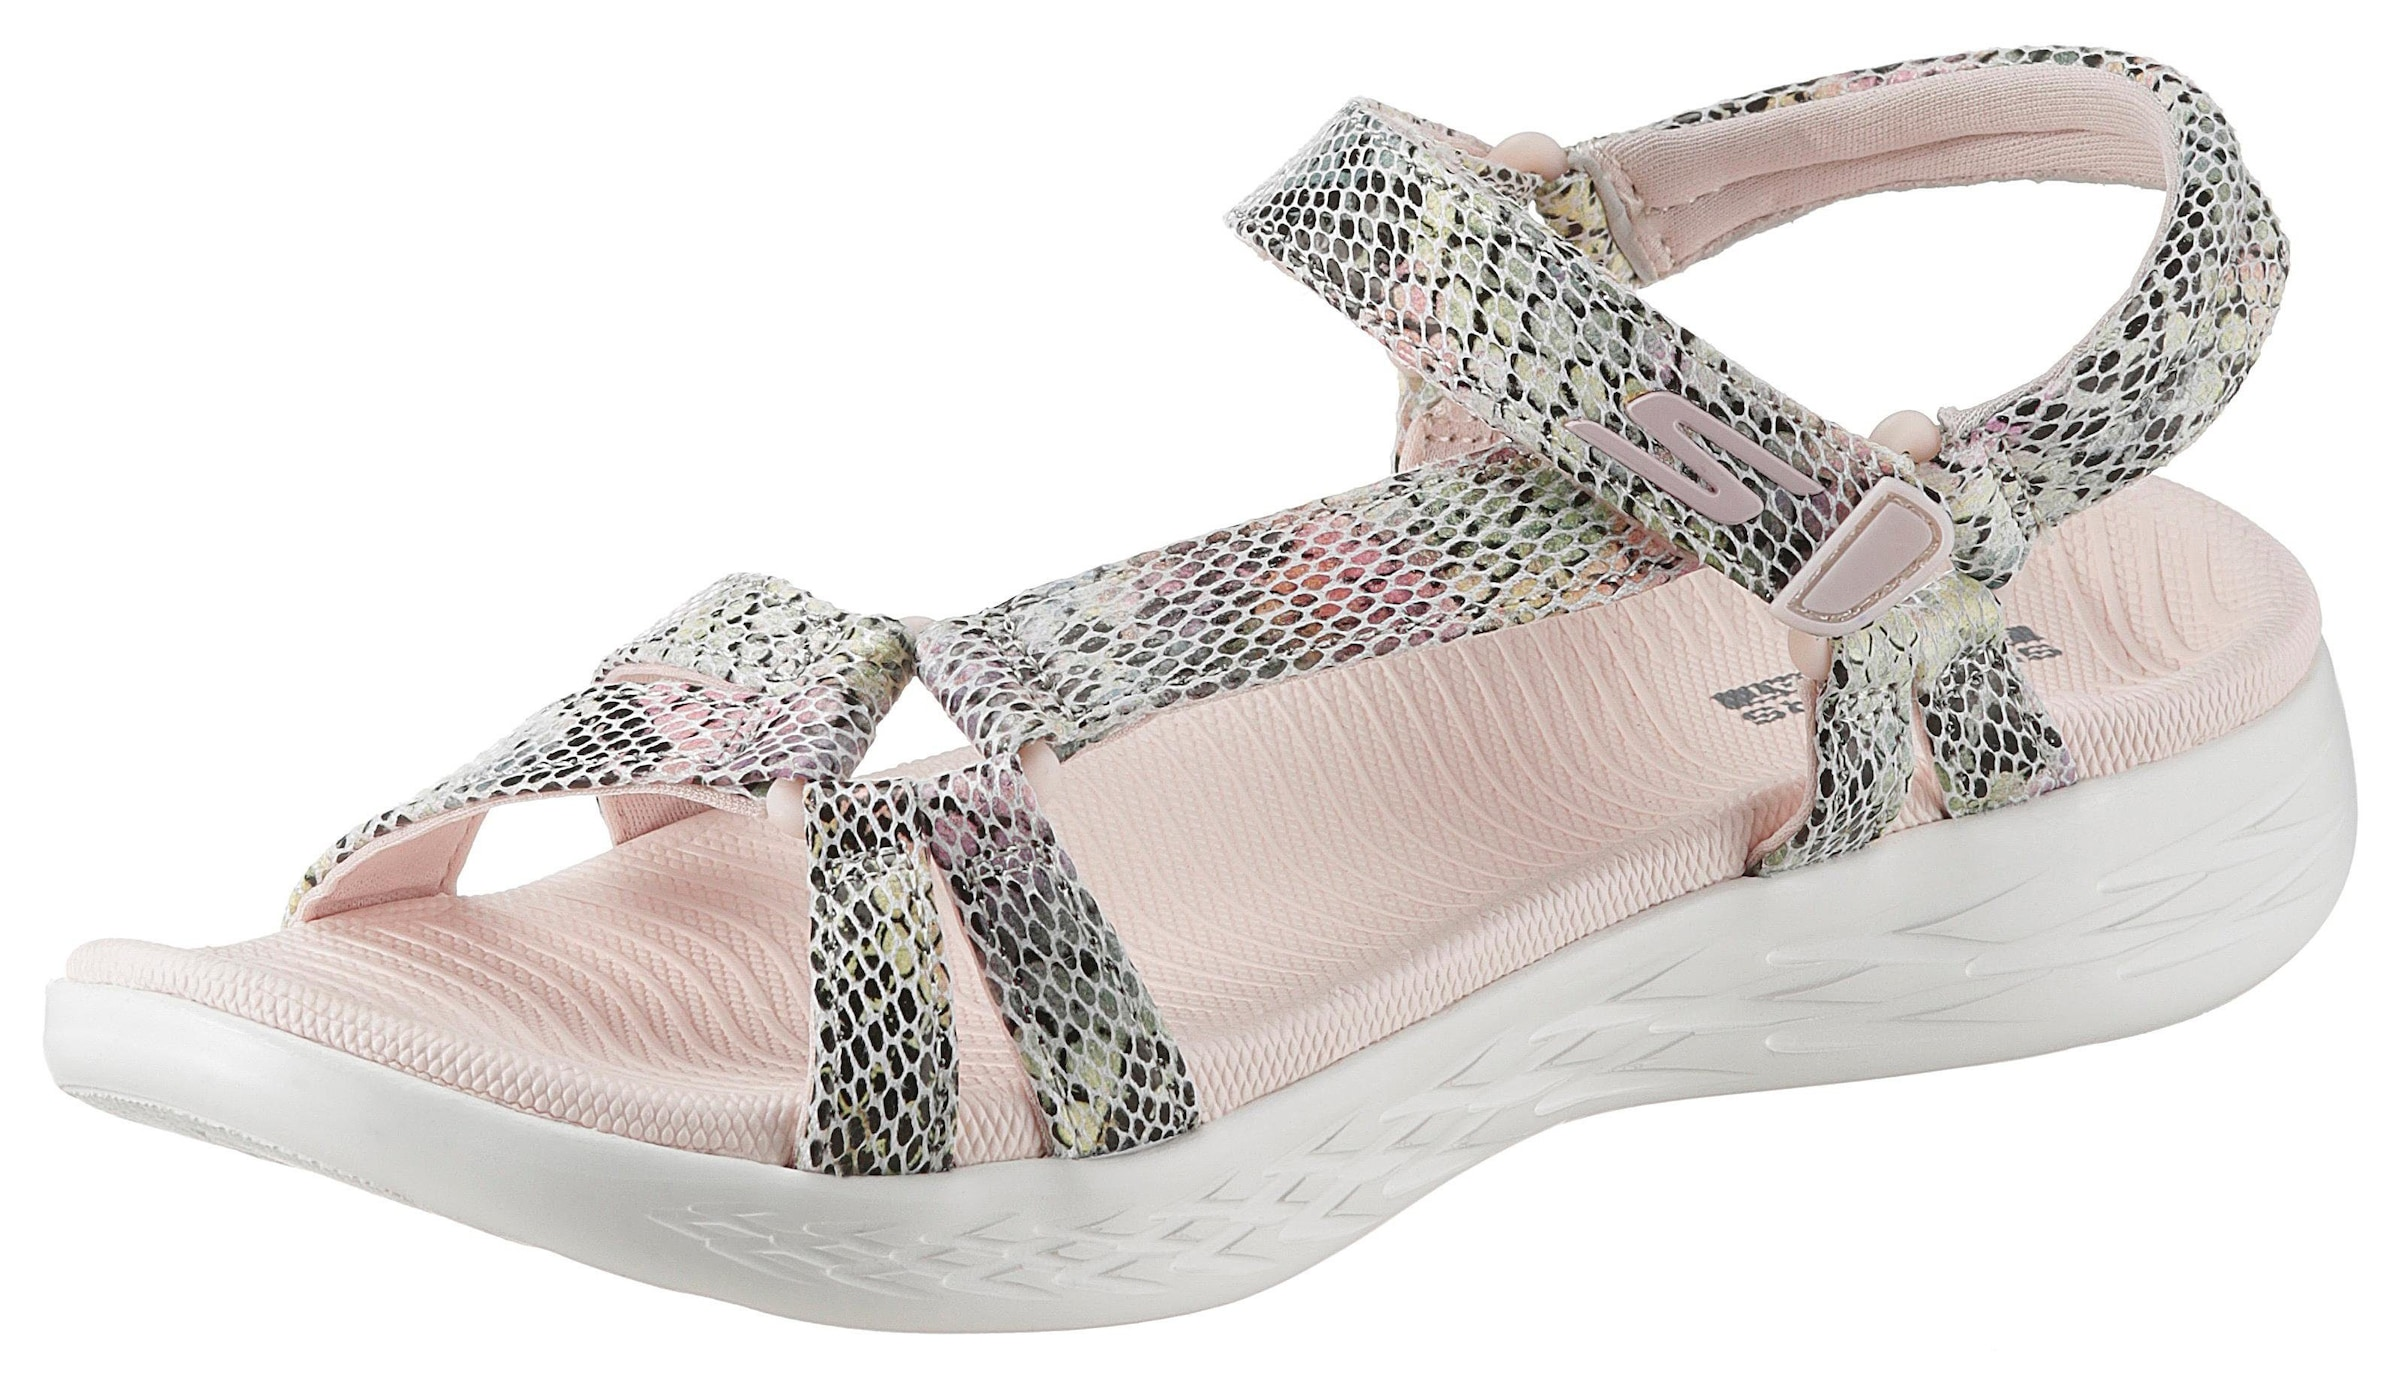 Skechers Sandale »On the Go 600 Boa« online kaufen | BAUR